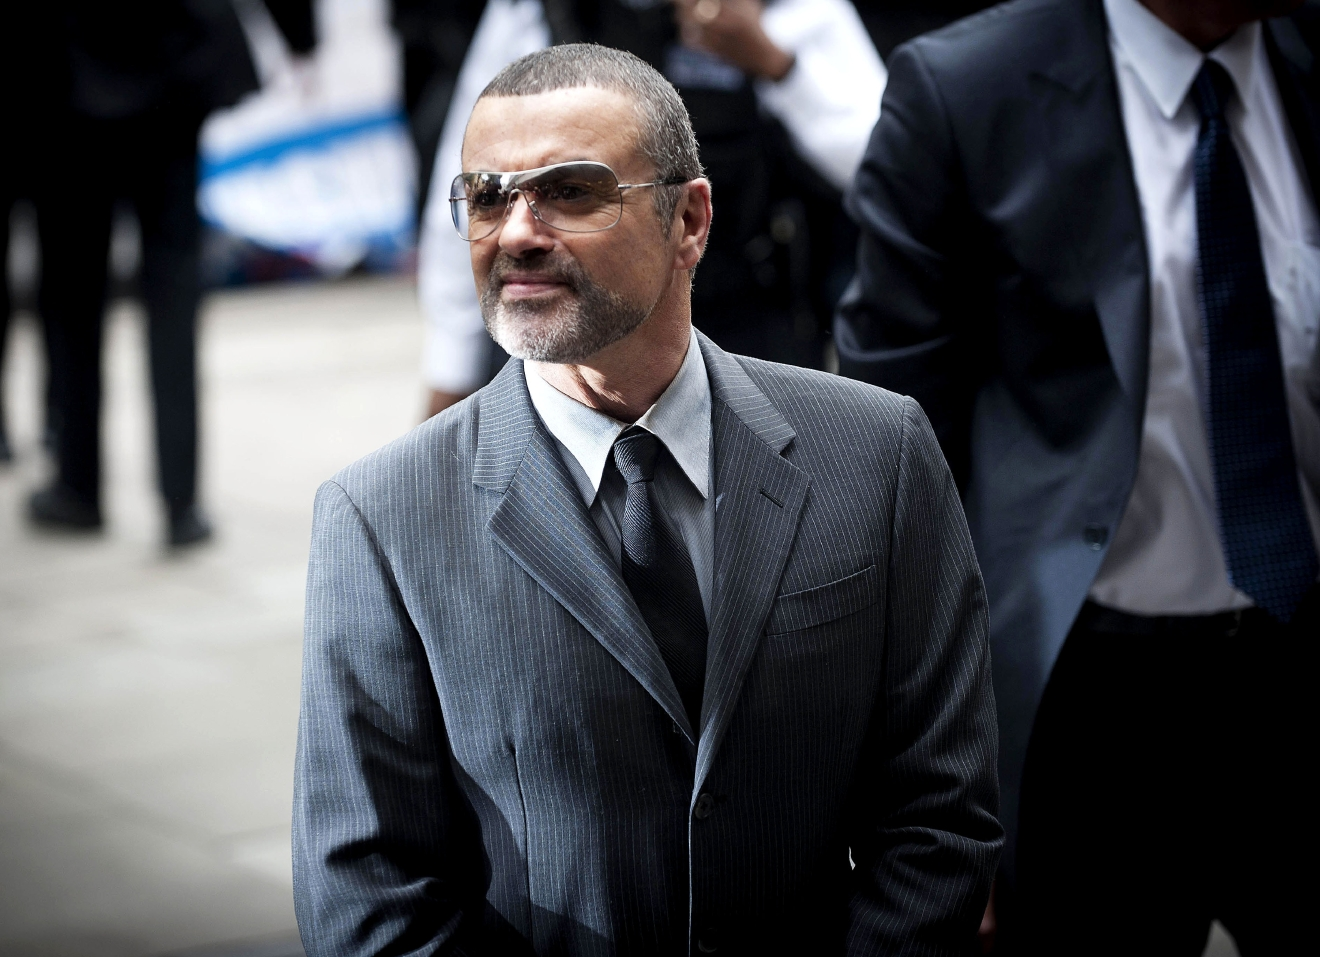 George Michael                                   arrives at Highbury Corner Magistrates Court to be sentenced for driving offences                                   London, England - 14.09.10                                                                      Featuring: George Michael                                   Where: London, United Kingdom                                   When: 14 Sep 2010                                   Credit: WENN